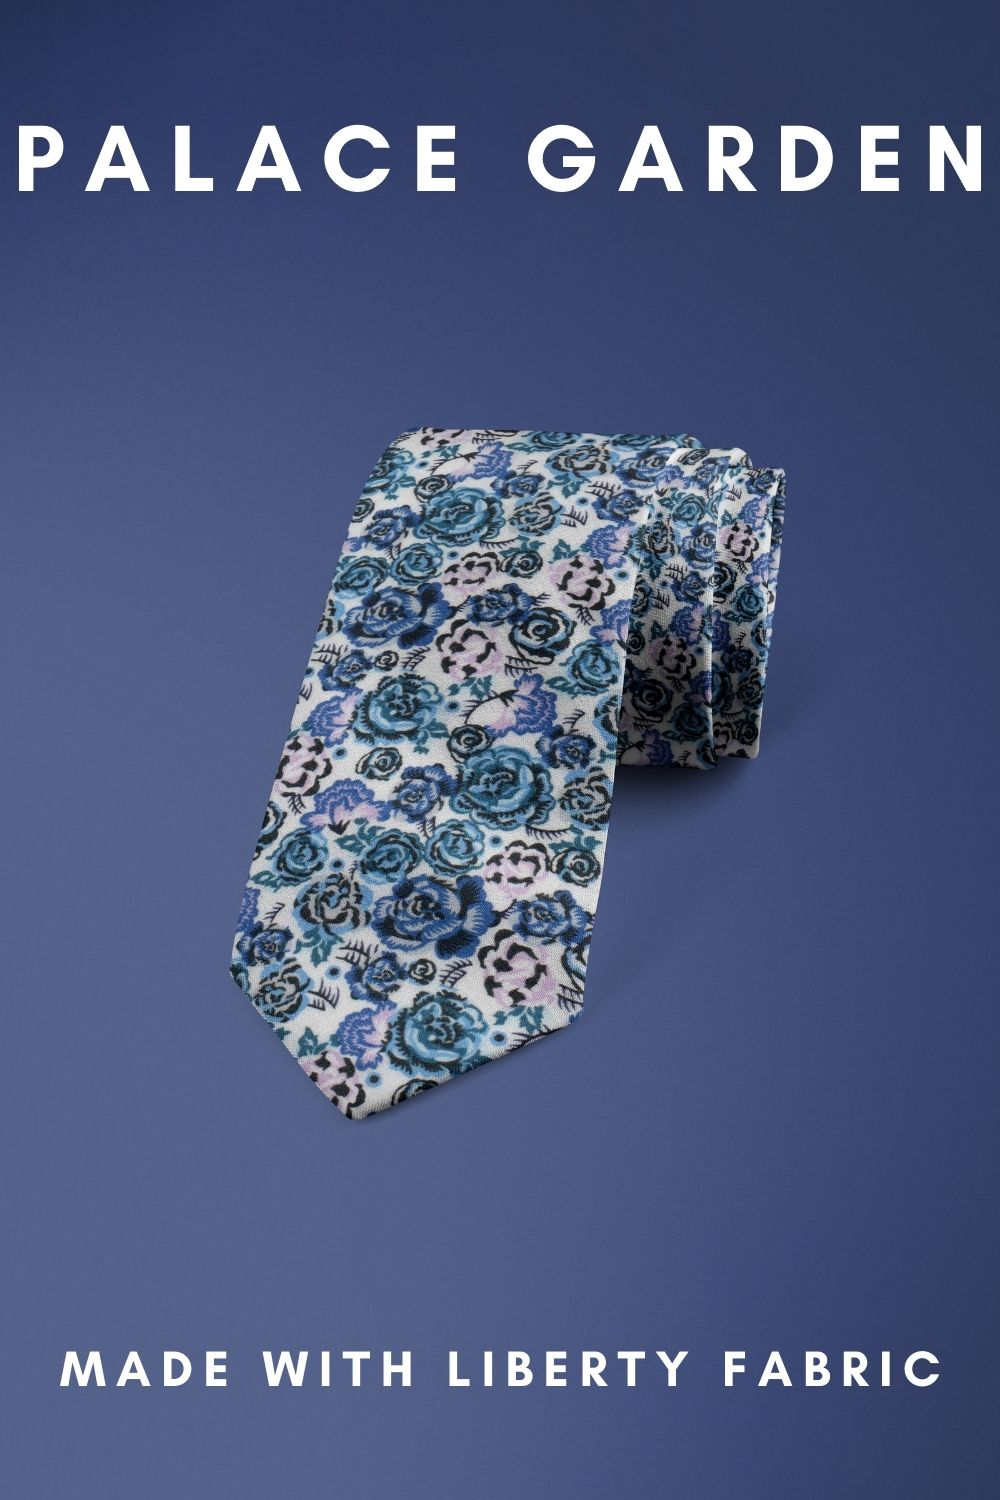 Palace Garden Liberty of London cotton fabric floral tie